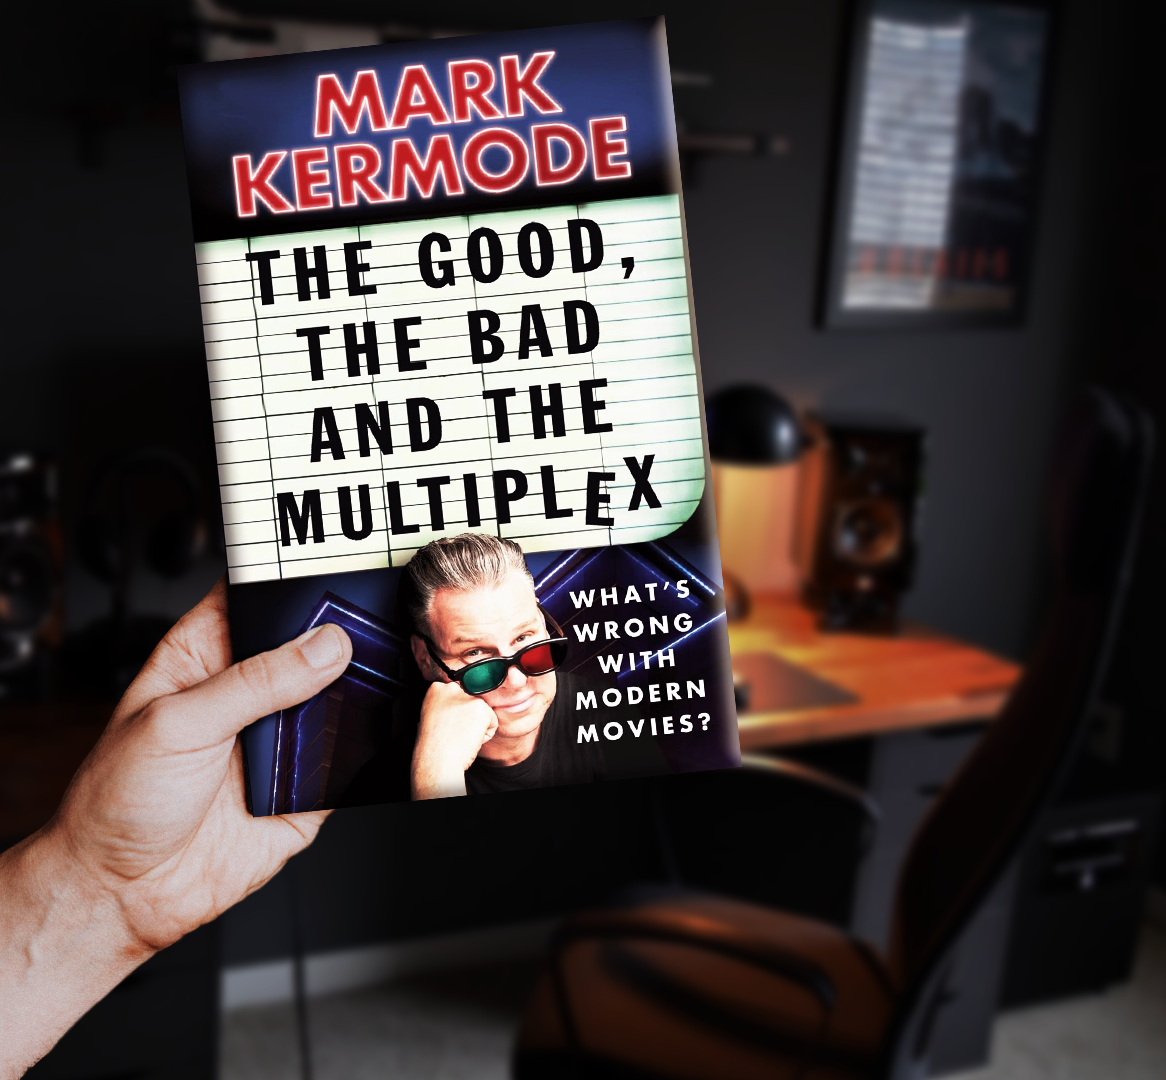 mark kermode books the good the bad and the multiplex cinema film critic modern movies blockbuster review